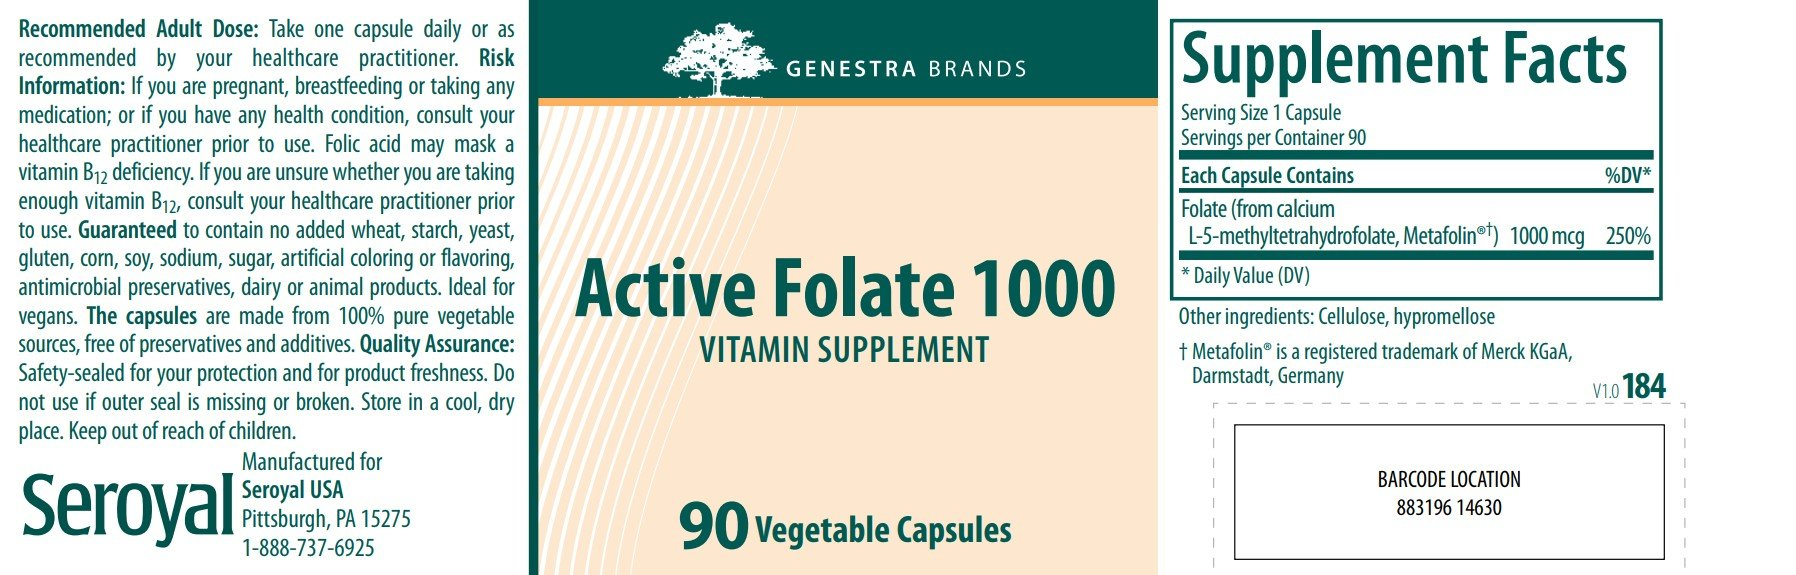 Genestra Brands Active Folate 1000